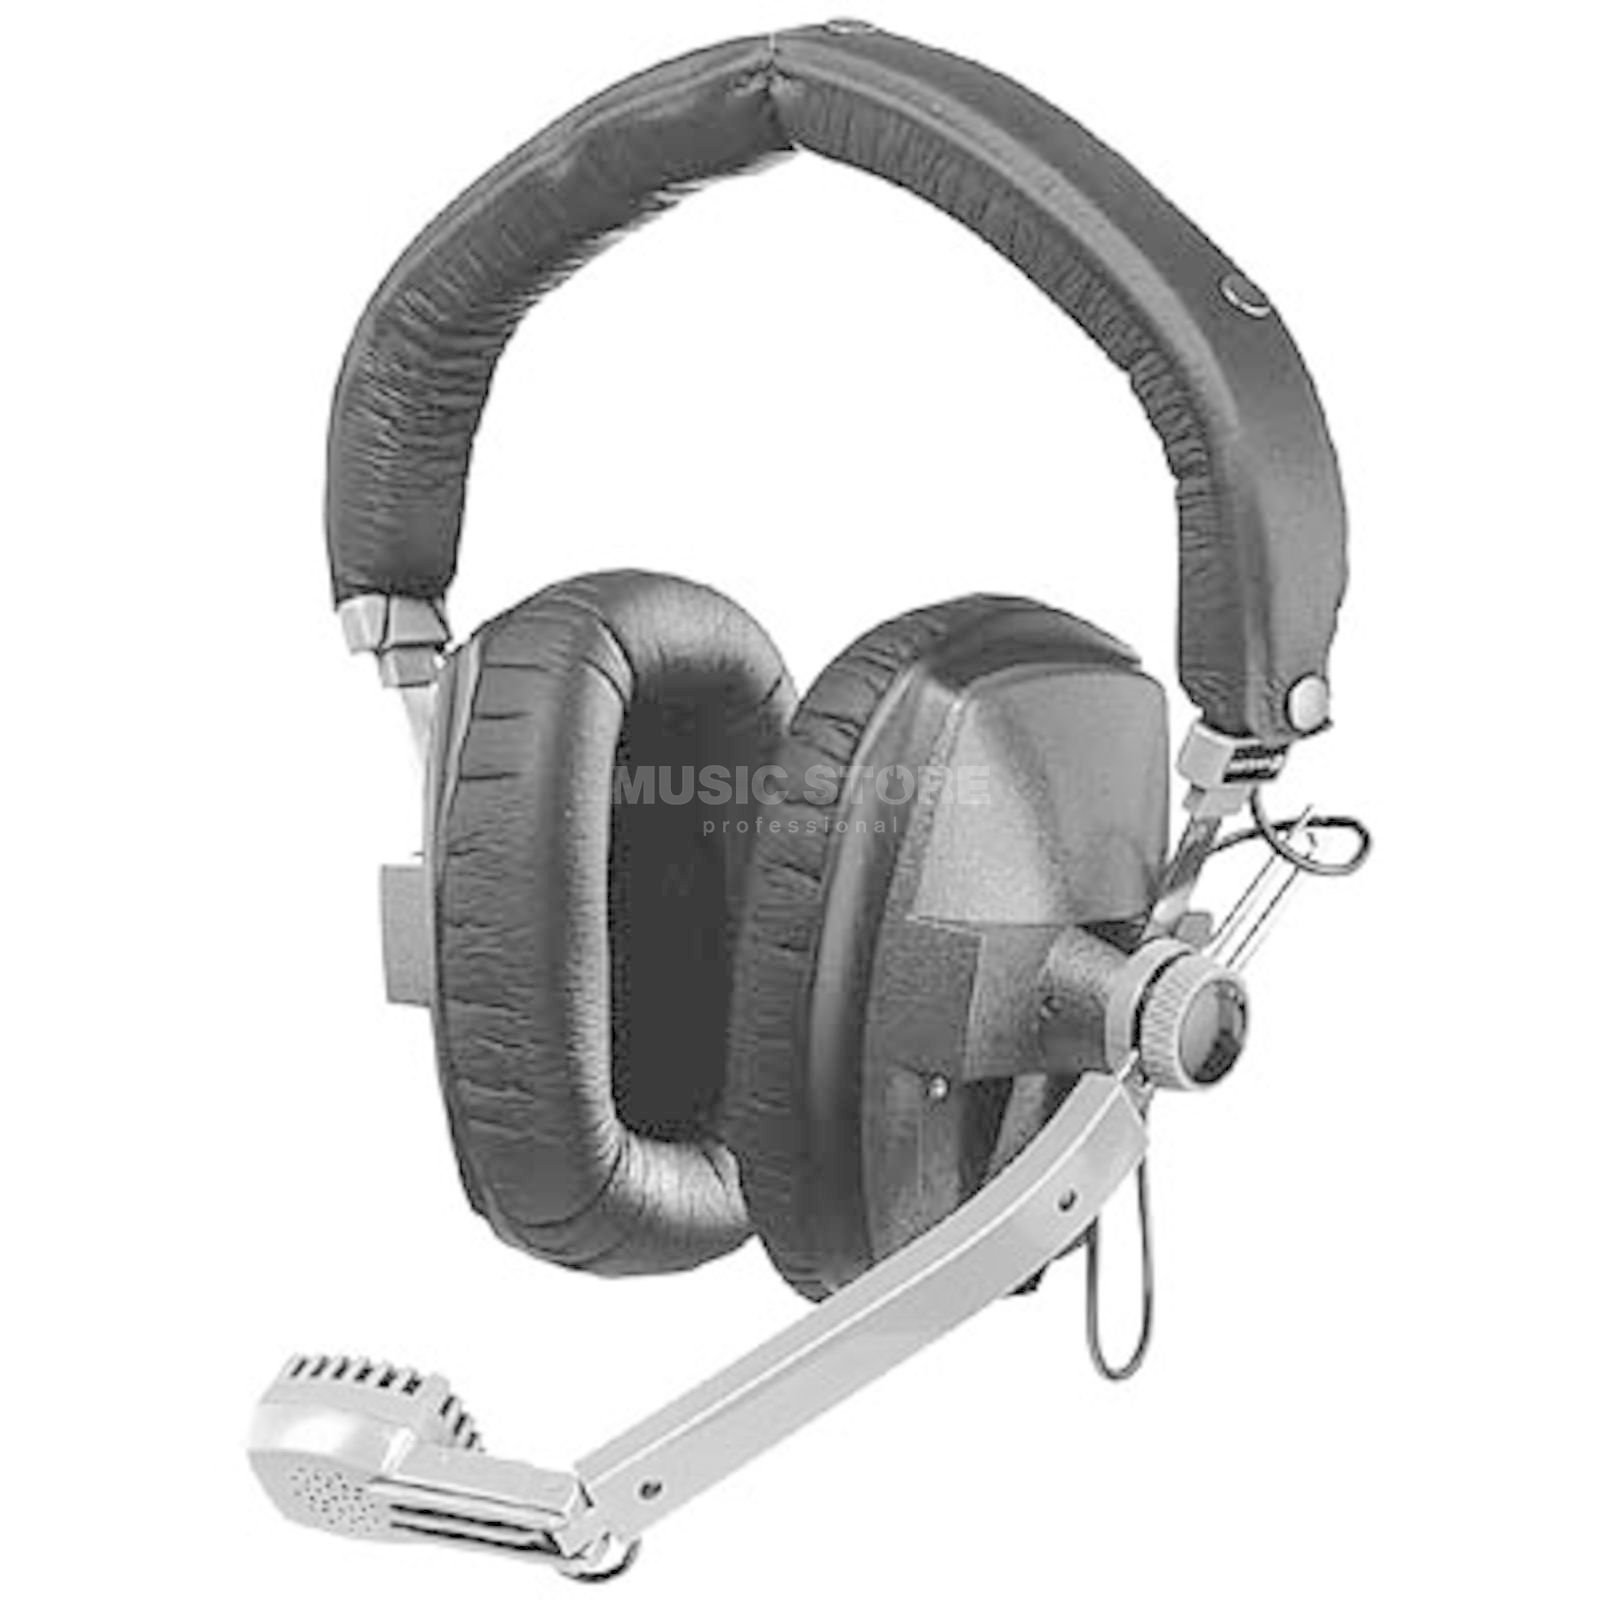 beyerdynamic DT 190 headset, headphone 200/250 Ohm,black, open ends Zdjęcie produktu